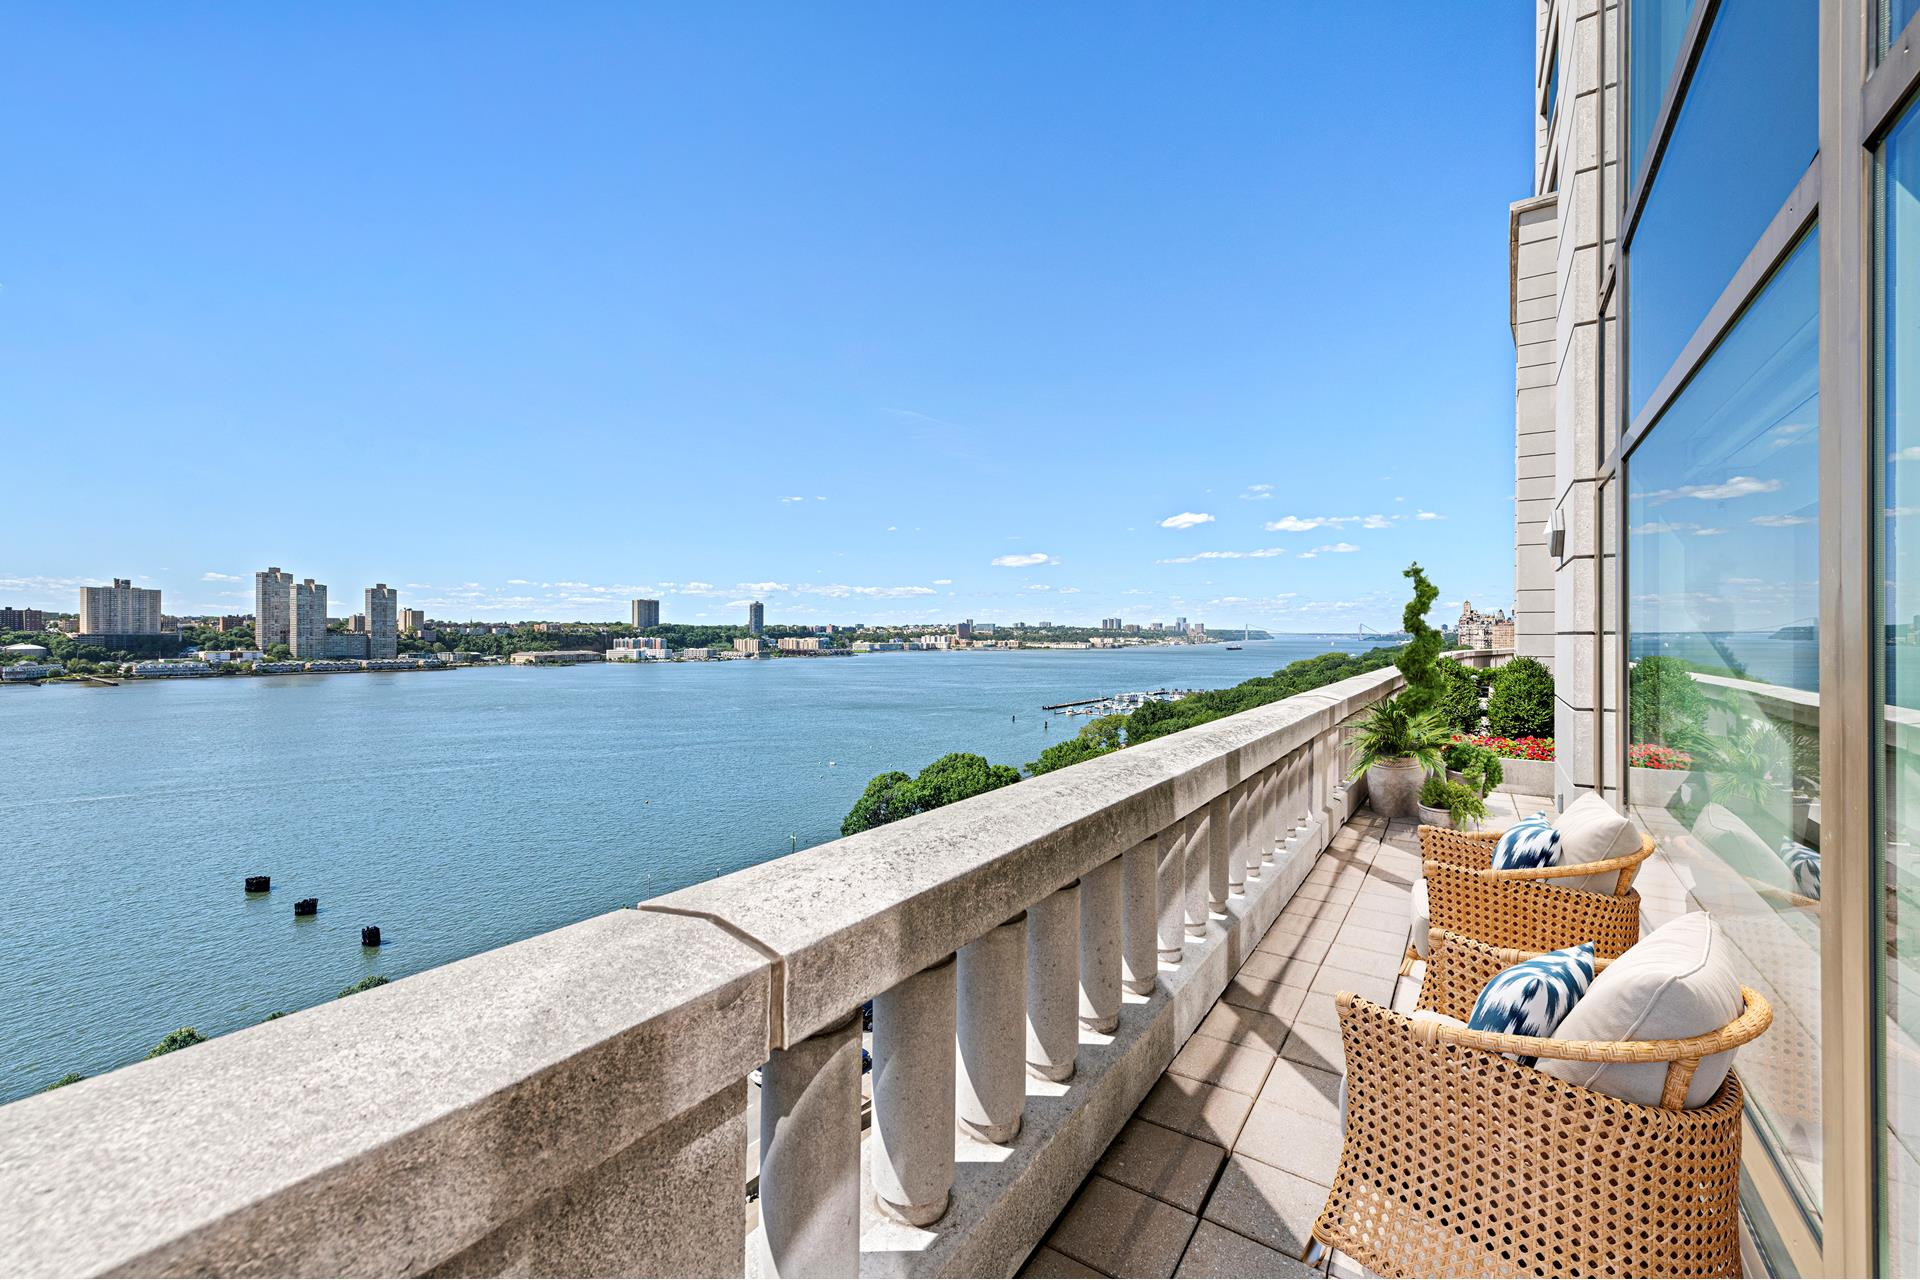 Style and comfort define this 2,182 square foot newly renovated home with direct views of the Hudson River and beyond. The entry foyer opens to a sun-filled great room that seamlessly combines kitchen and dining space with owner private access to a beautiful   limestone encased 265 square foot setback terrace directly looking out onto the Hudson River. The windowed chefs kitchen is equipped with top-of-the-line appliances, new white granite floors and quartz countertops and backsplash, imported Poggenpohl wood cabinetry,   and a new Kohler stainless steel farmhouse sink and faucet with a new GE water filtration system. All three bedrooms are privately positioned off the entry foyer with sunny Southern exposures and river views. The master bedroom has an ensuite marble bath with   Kohler fixtures, a soaking tub, separate glass-enclosed rain shower, and double vanities. Thee Crestron smart-home automation system provides remote individual room control directly from your smart phone for heating and cooling, motorized Lutron shades, recessed   and cove lighting. This updated Crestron audio/visual system also provides multi-zone music in each room including bathrooms and the outside setback terrace as well as surround sound audio/video systems in the living room and master bedroom for a cinematic   experience. Additional features include Siberian Oak Plank flooring throughout the entire house, large custom-fitted California Closets in each bedroom, including several walk-ins, vented washer/dryer. soundproof windows and in-wall and in-ceiling acoustic   panels providing quiet privacy.     The Heritage is a full-service, white glove condominium with a wealth of amenities which include a 24-hour Doorman, 24-Hour Concierge, 24-Hour Engineering staff, a 15,000 square foot newly renovated fitness center with 2 pools, steam, sauna and massage rooms,   event and screening rooms, private landscaped courtyard garden, library, playroom, valet parking, onsite garage with access dire